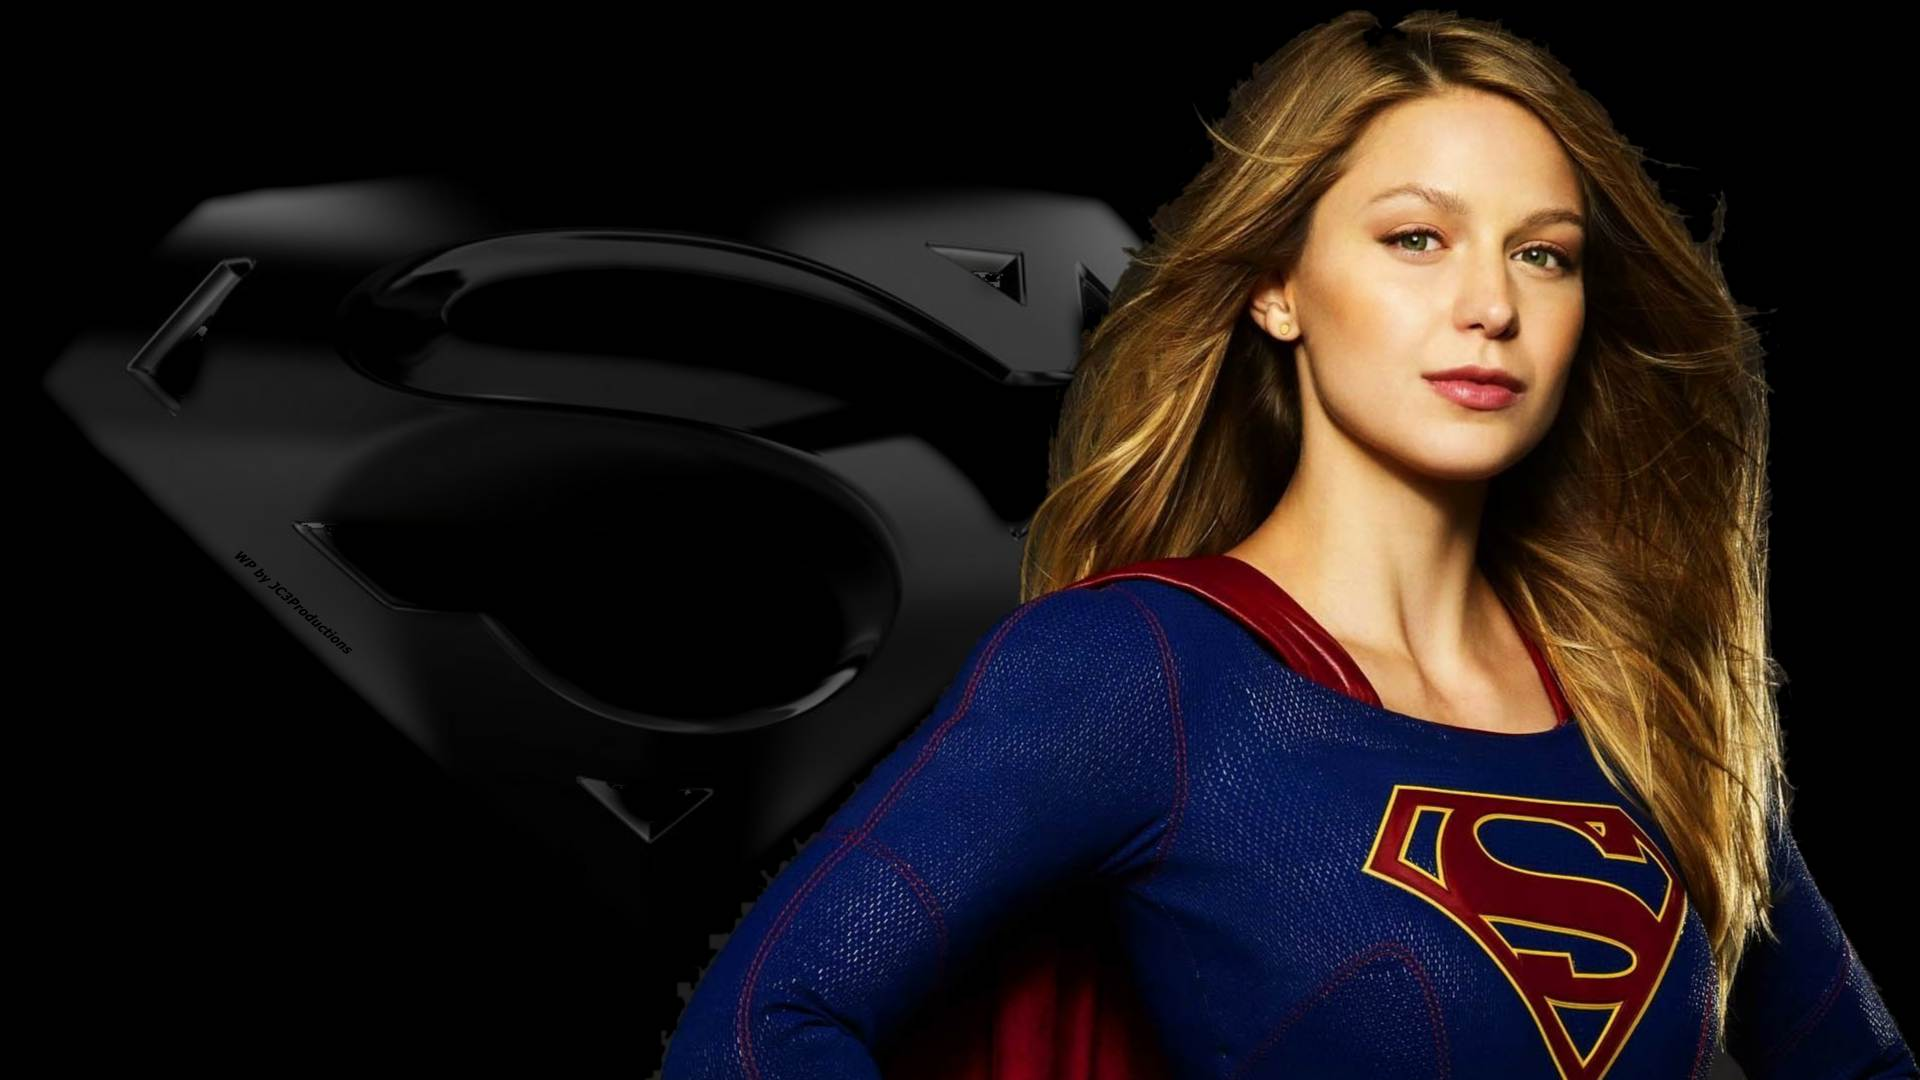 supergirl and icon Wallpaper